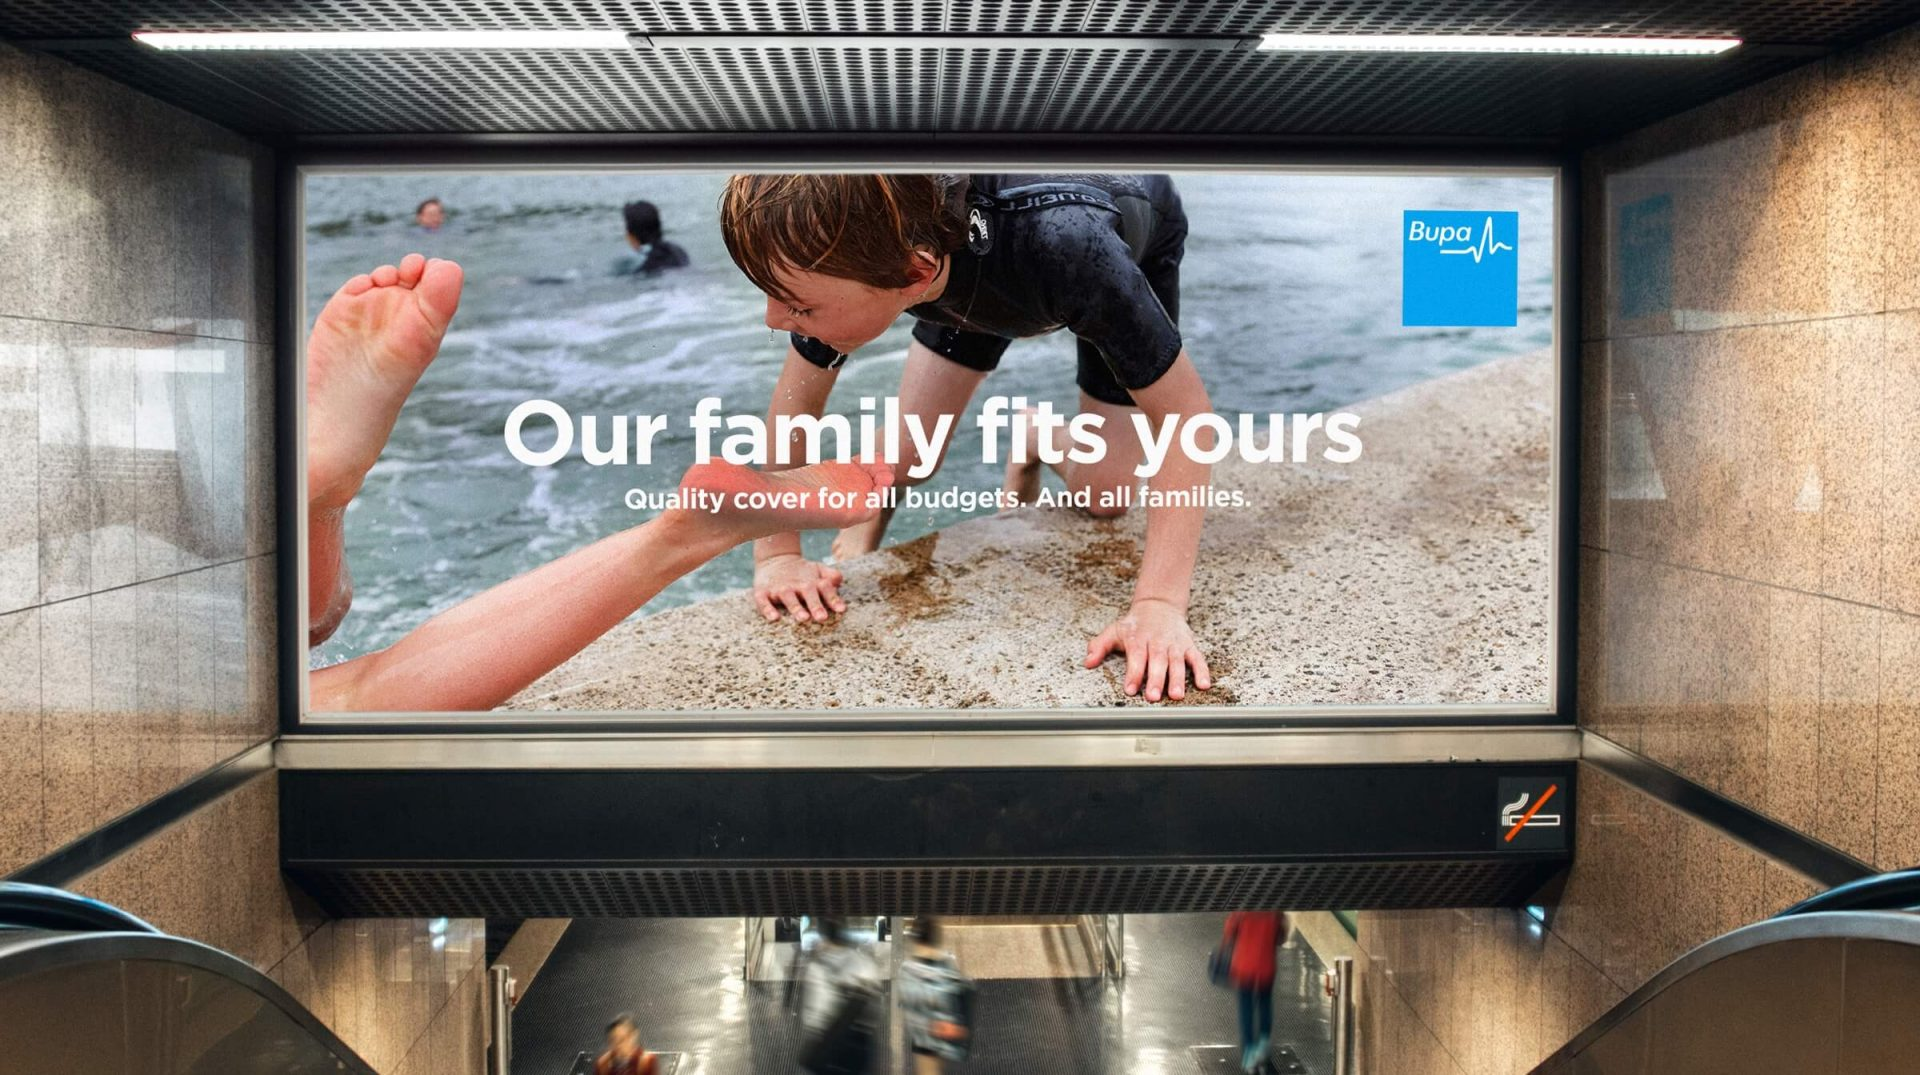 A billboard above a pair of escalators advertising Bupa family cover, with a photo of a young boy climbing out of a pool